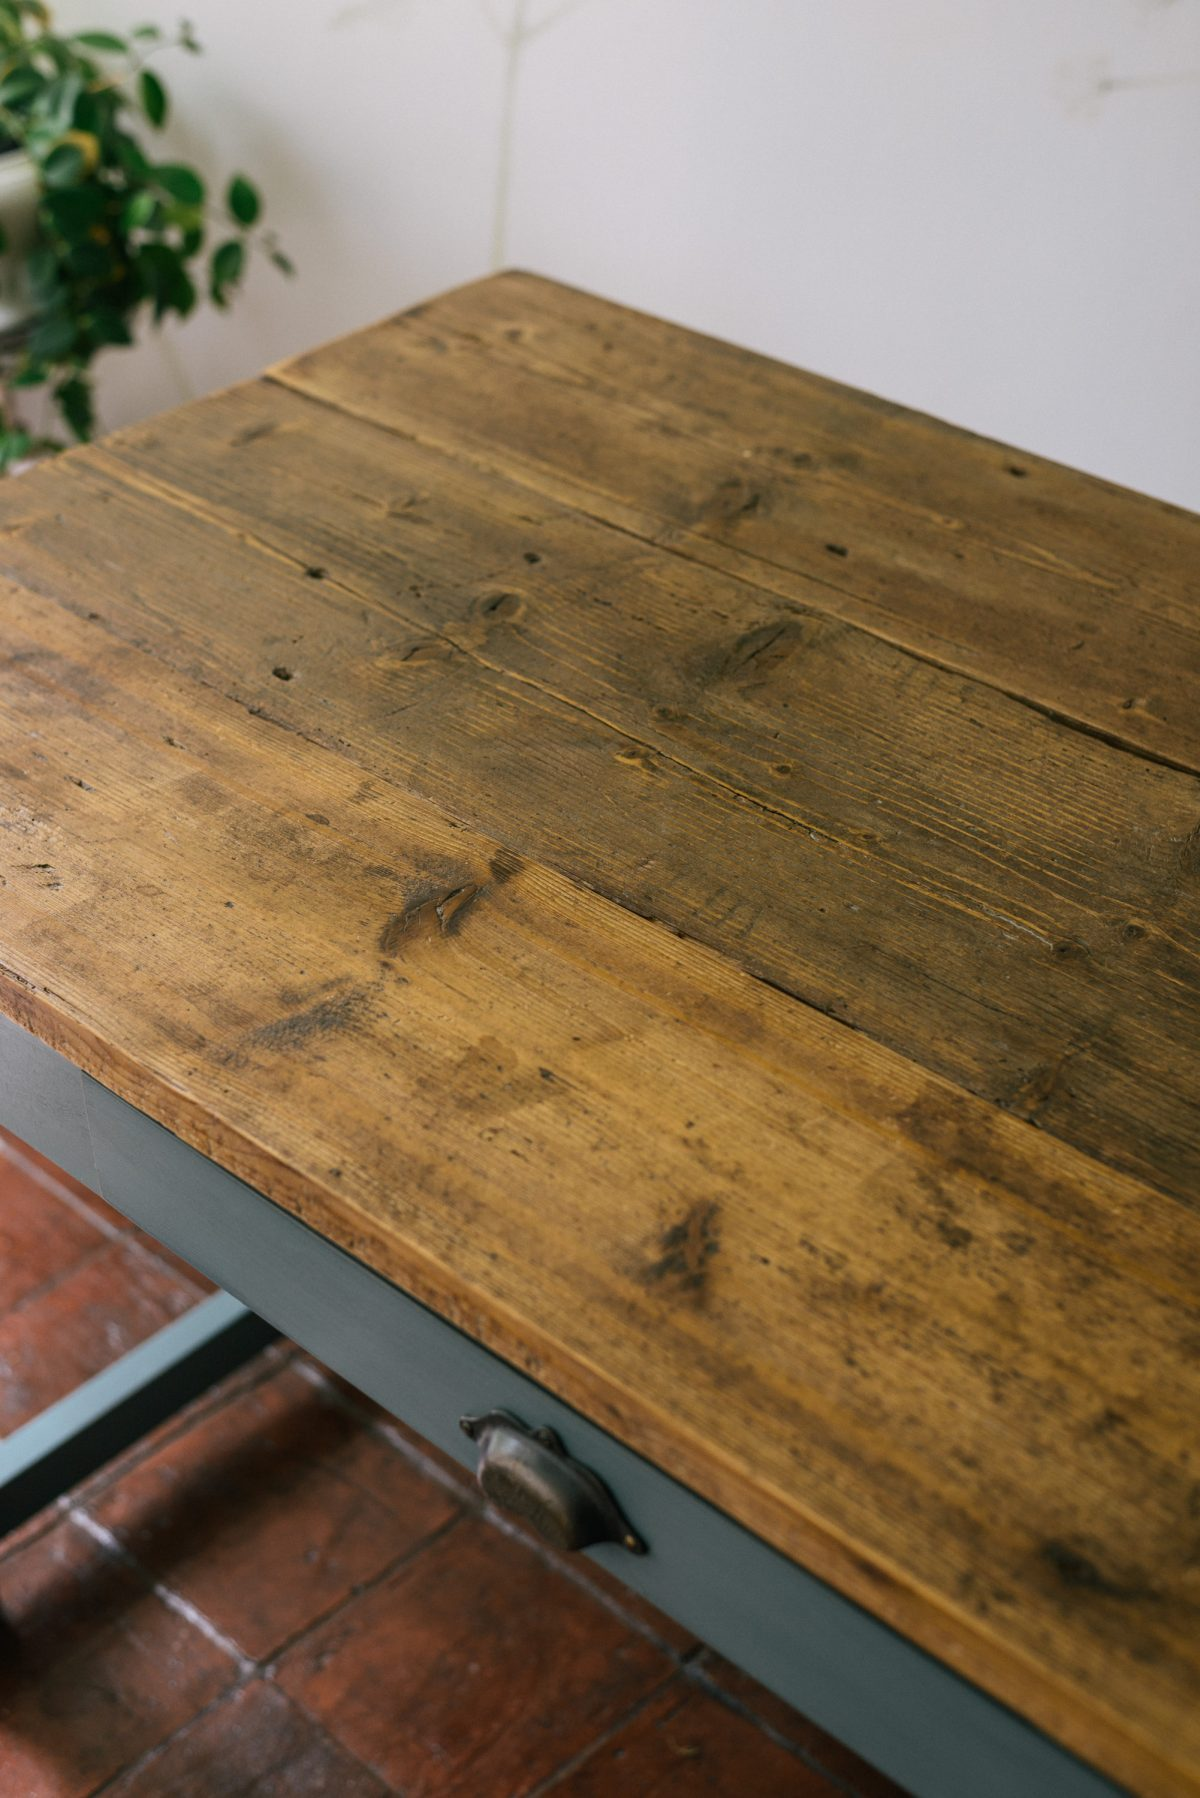 The tabletop is made from wide boards of reclaimed pine to complete the authentic, rustic look.